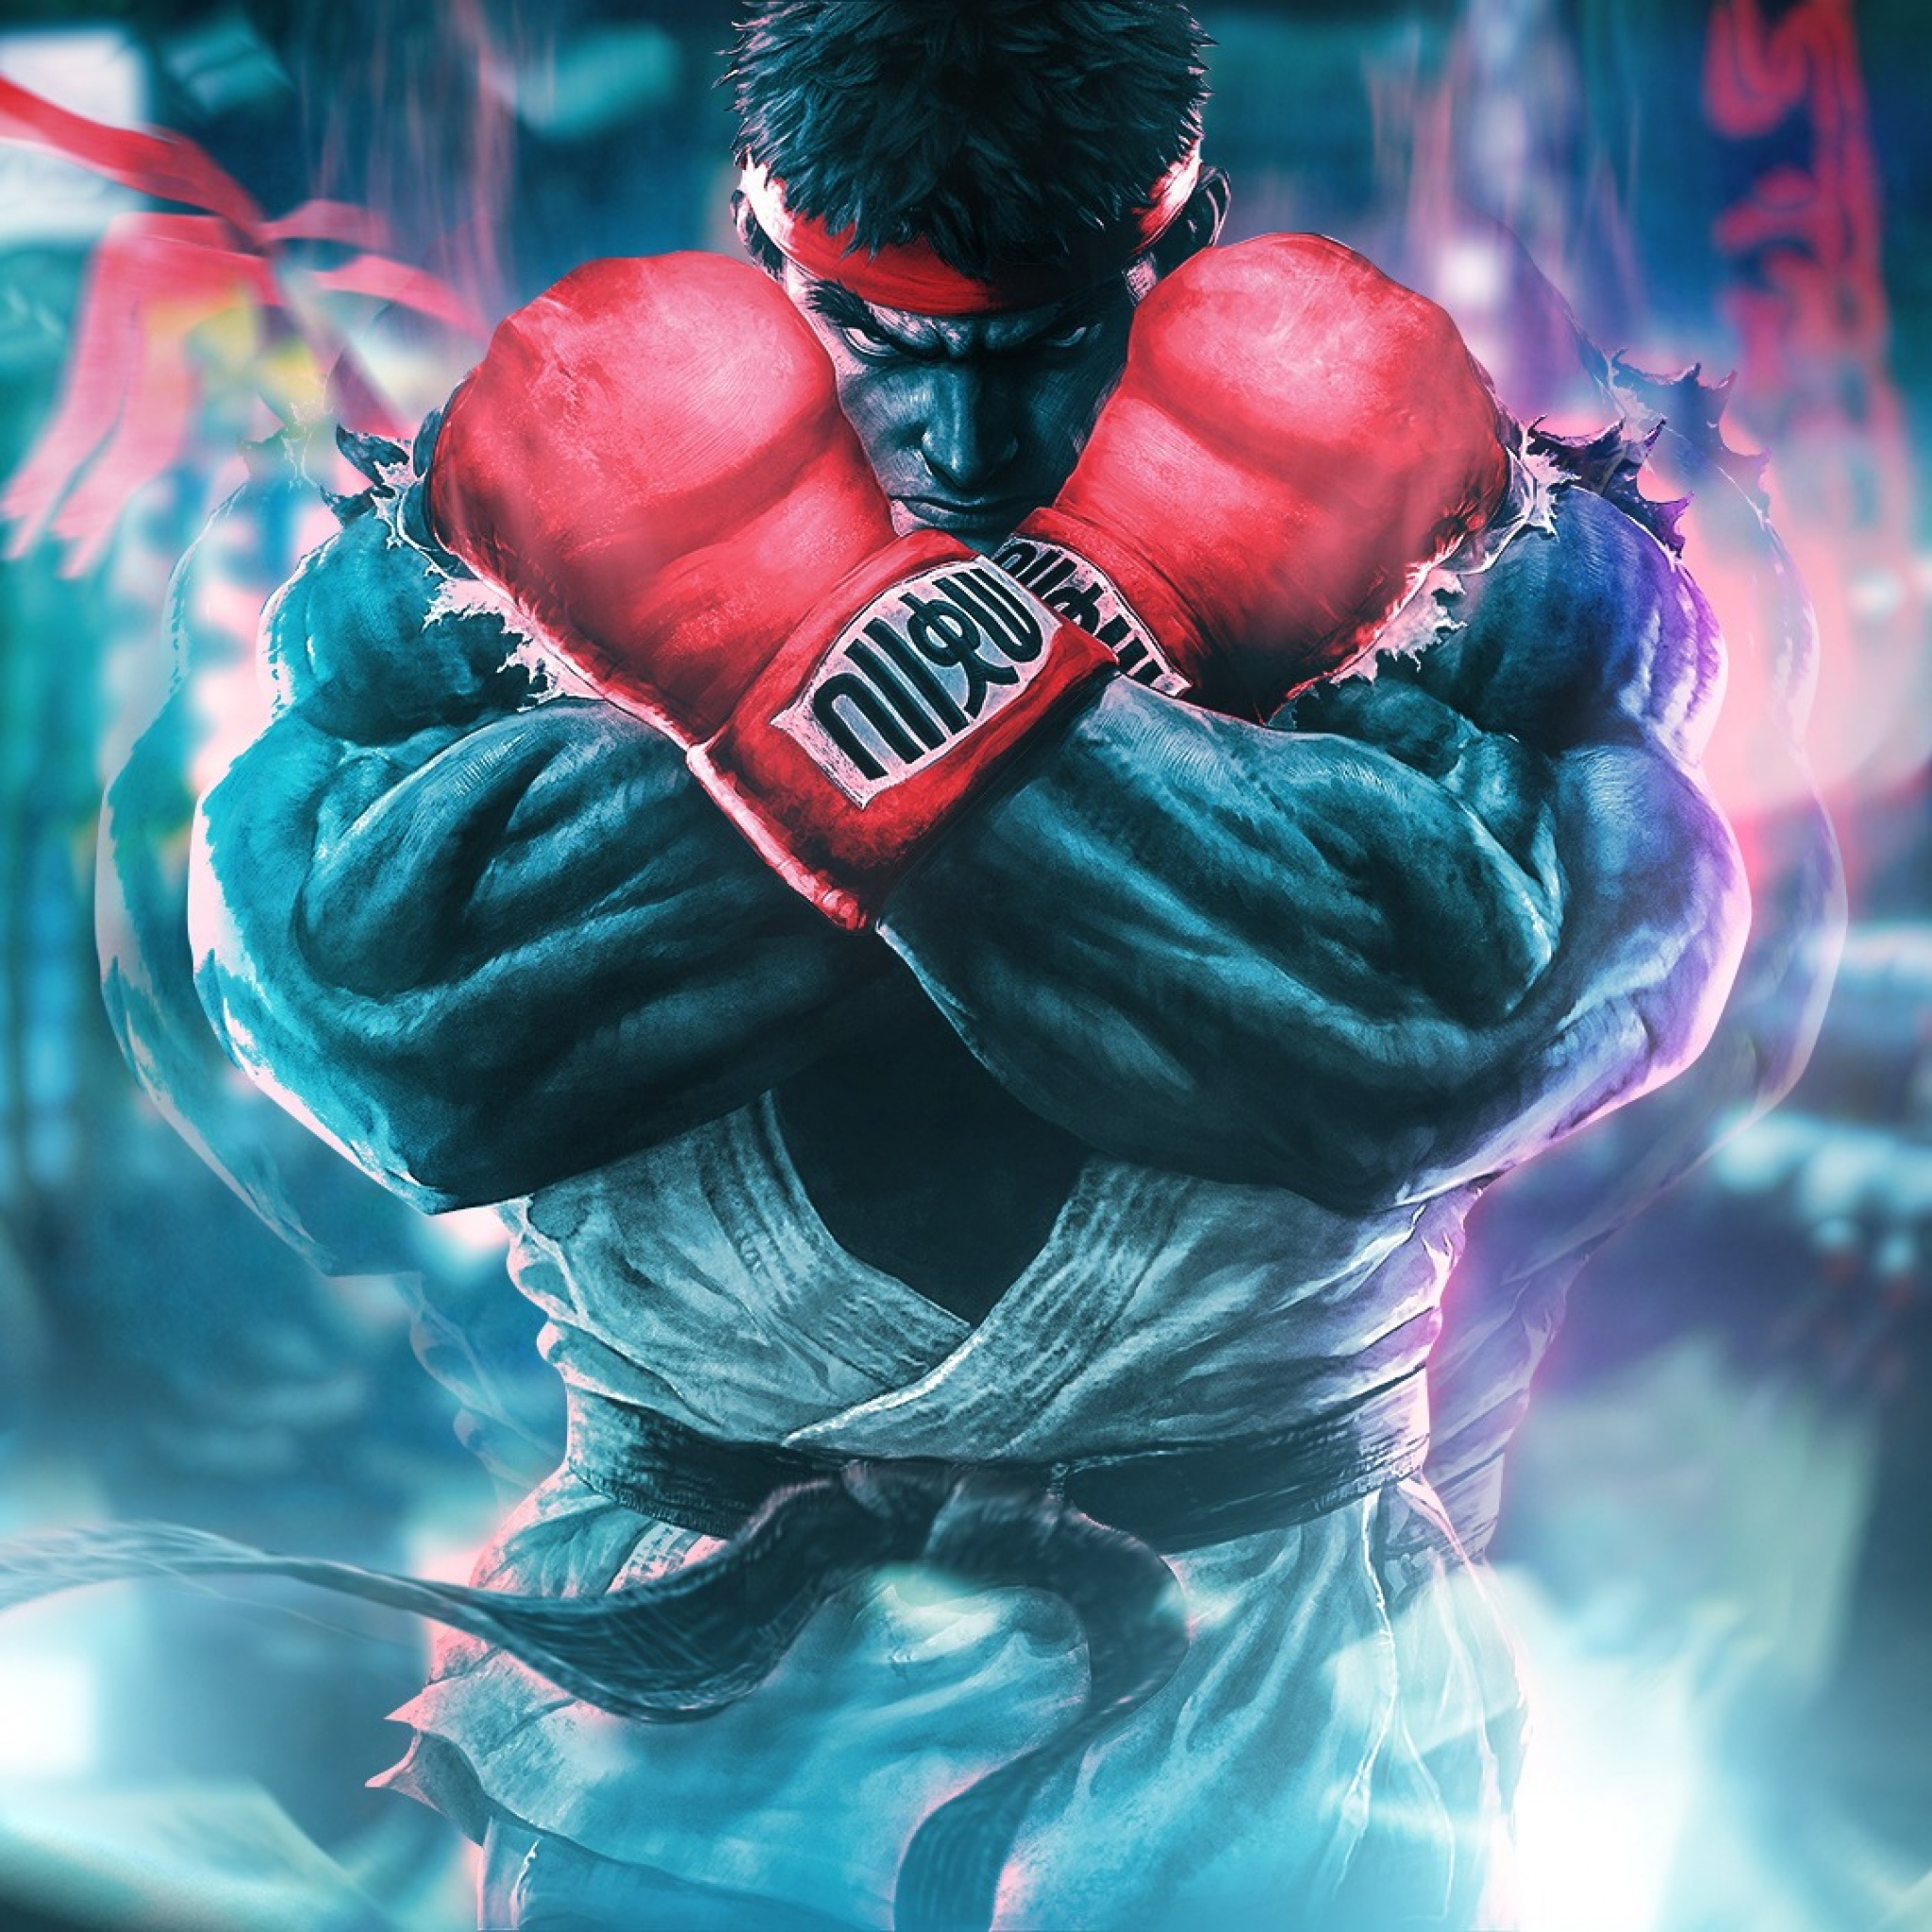 Falling Money Live Wallpaper Download Street Fighter 5 Wallpaper Gallery